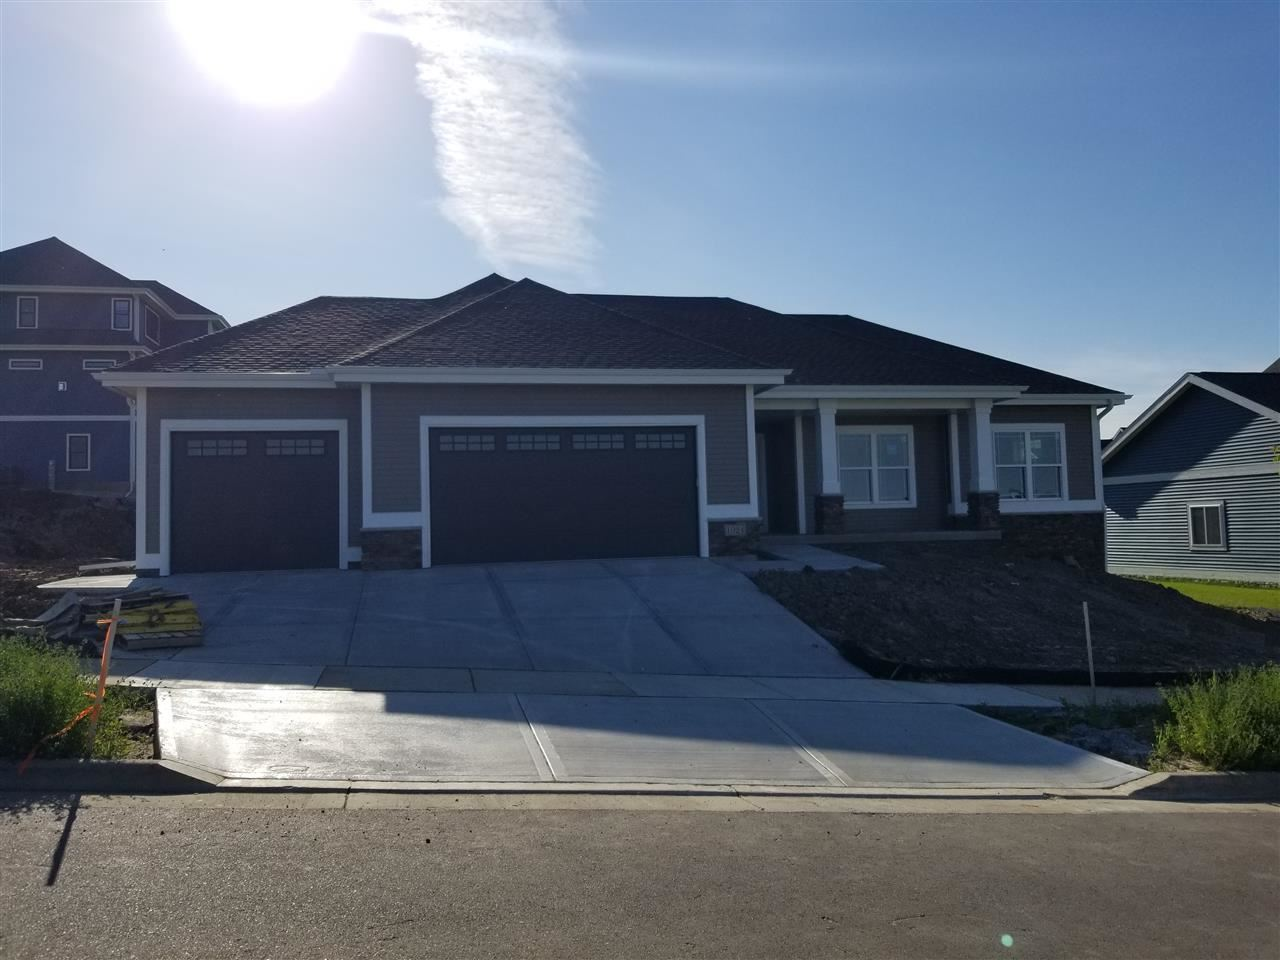 L216 Galway Ave, Waunakee, WI 53597-8958 - MLS#: 1874060